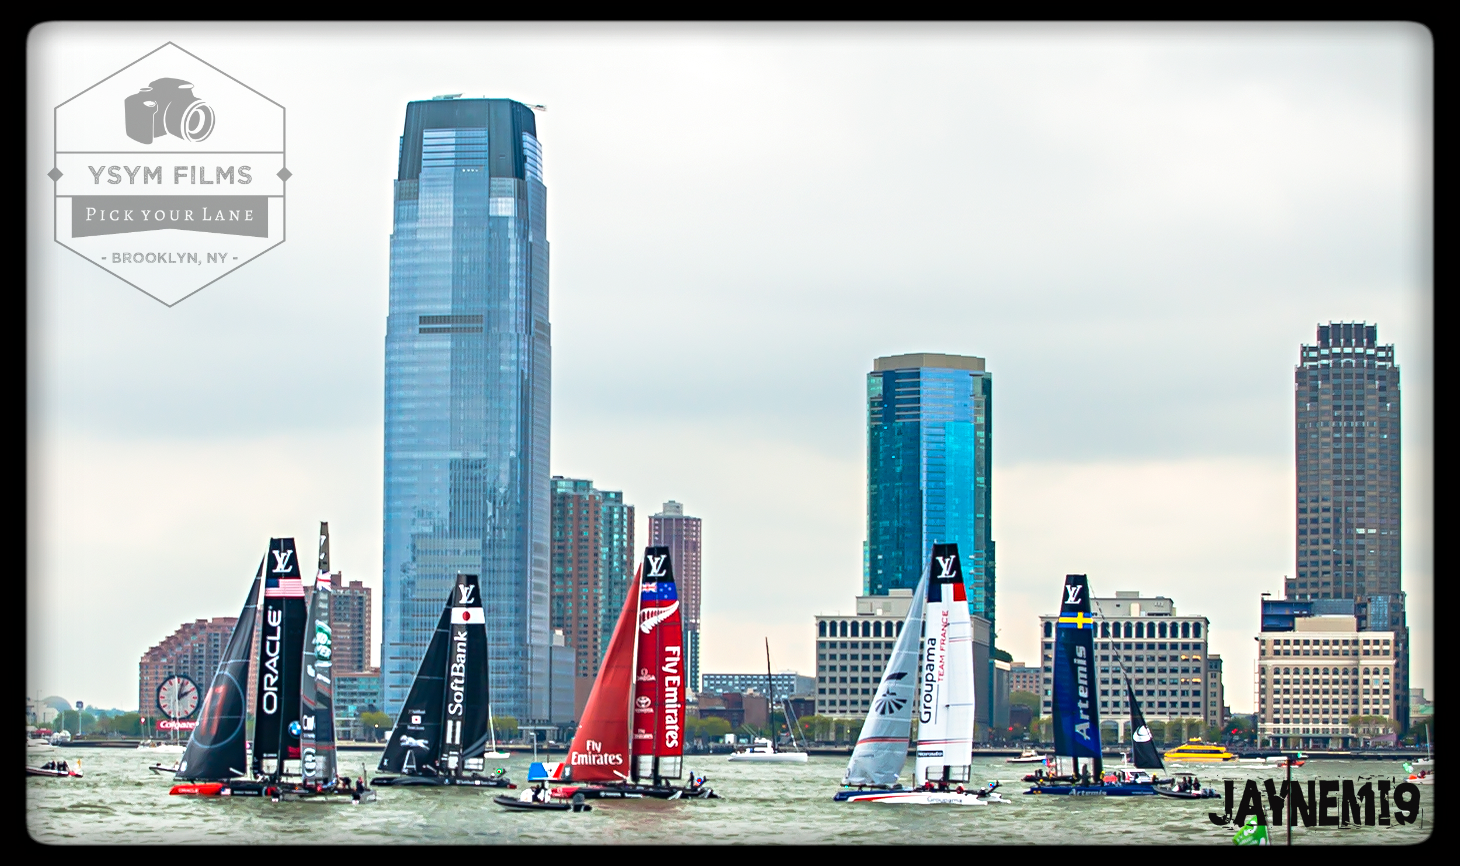 Americas cup race boats various.jpg